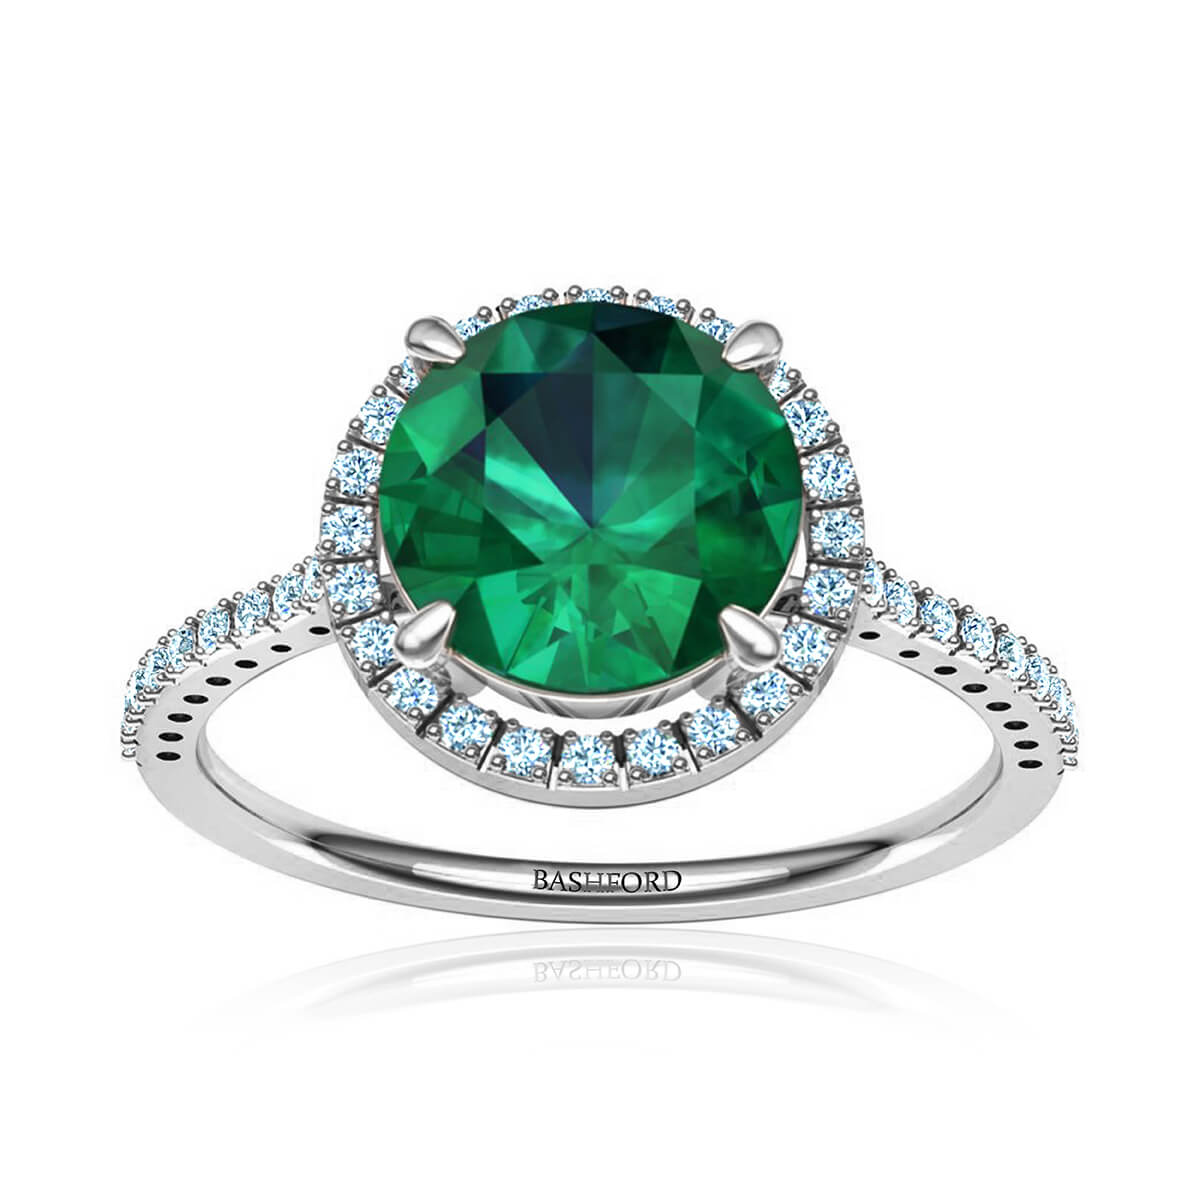 Lolita Emerald Ring (with 3/4 Carat Round Emerald)